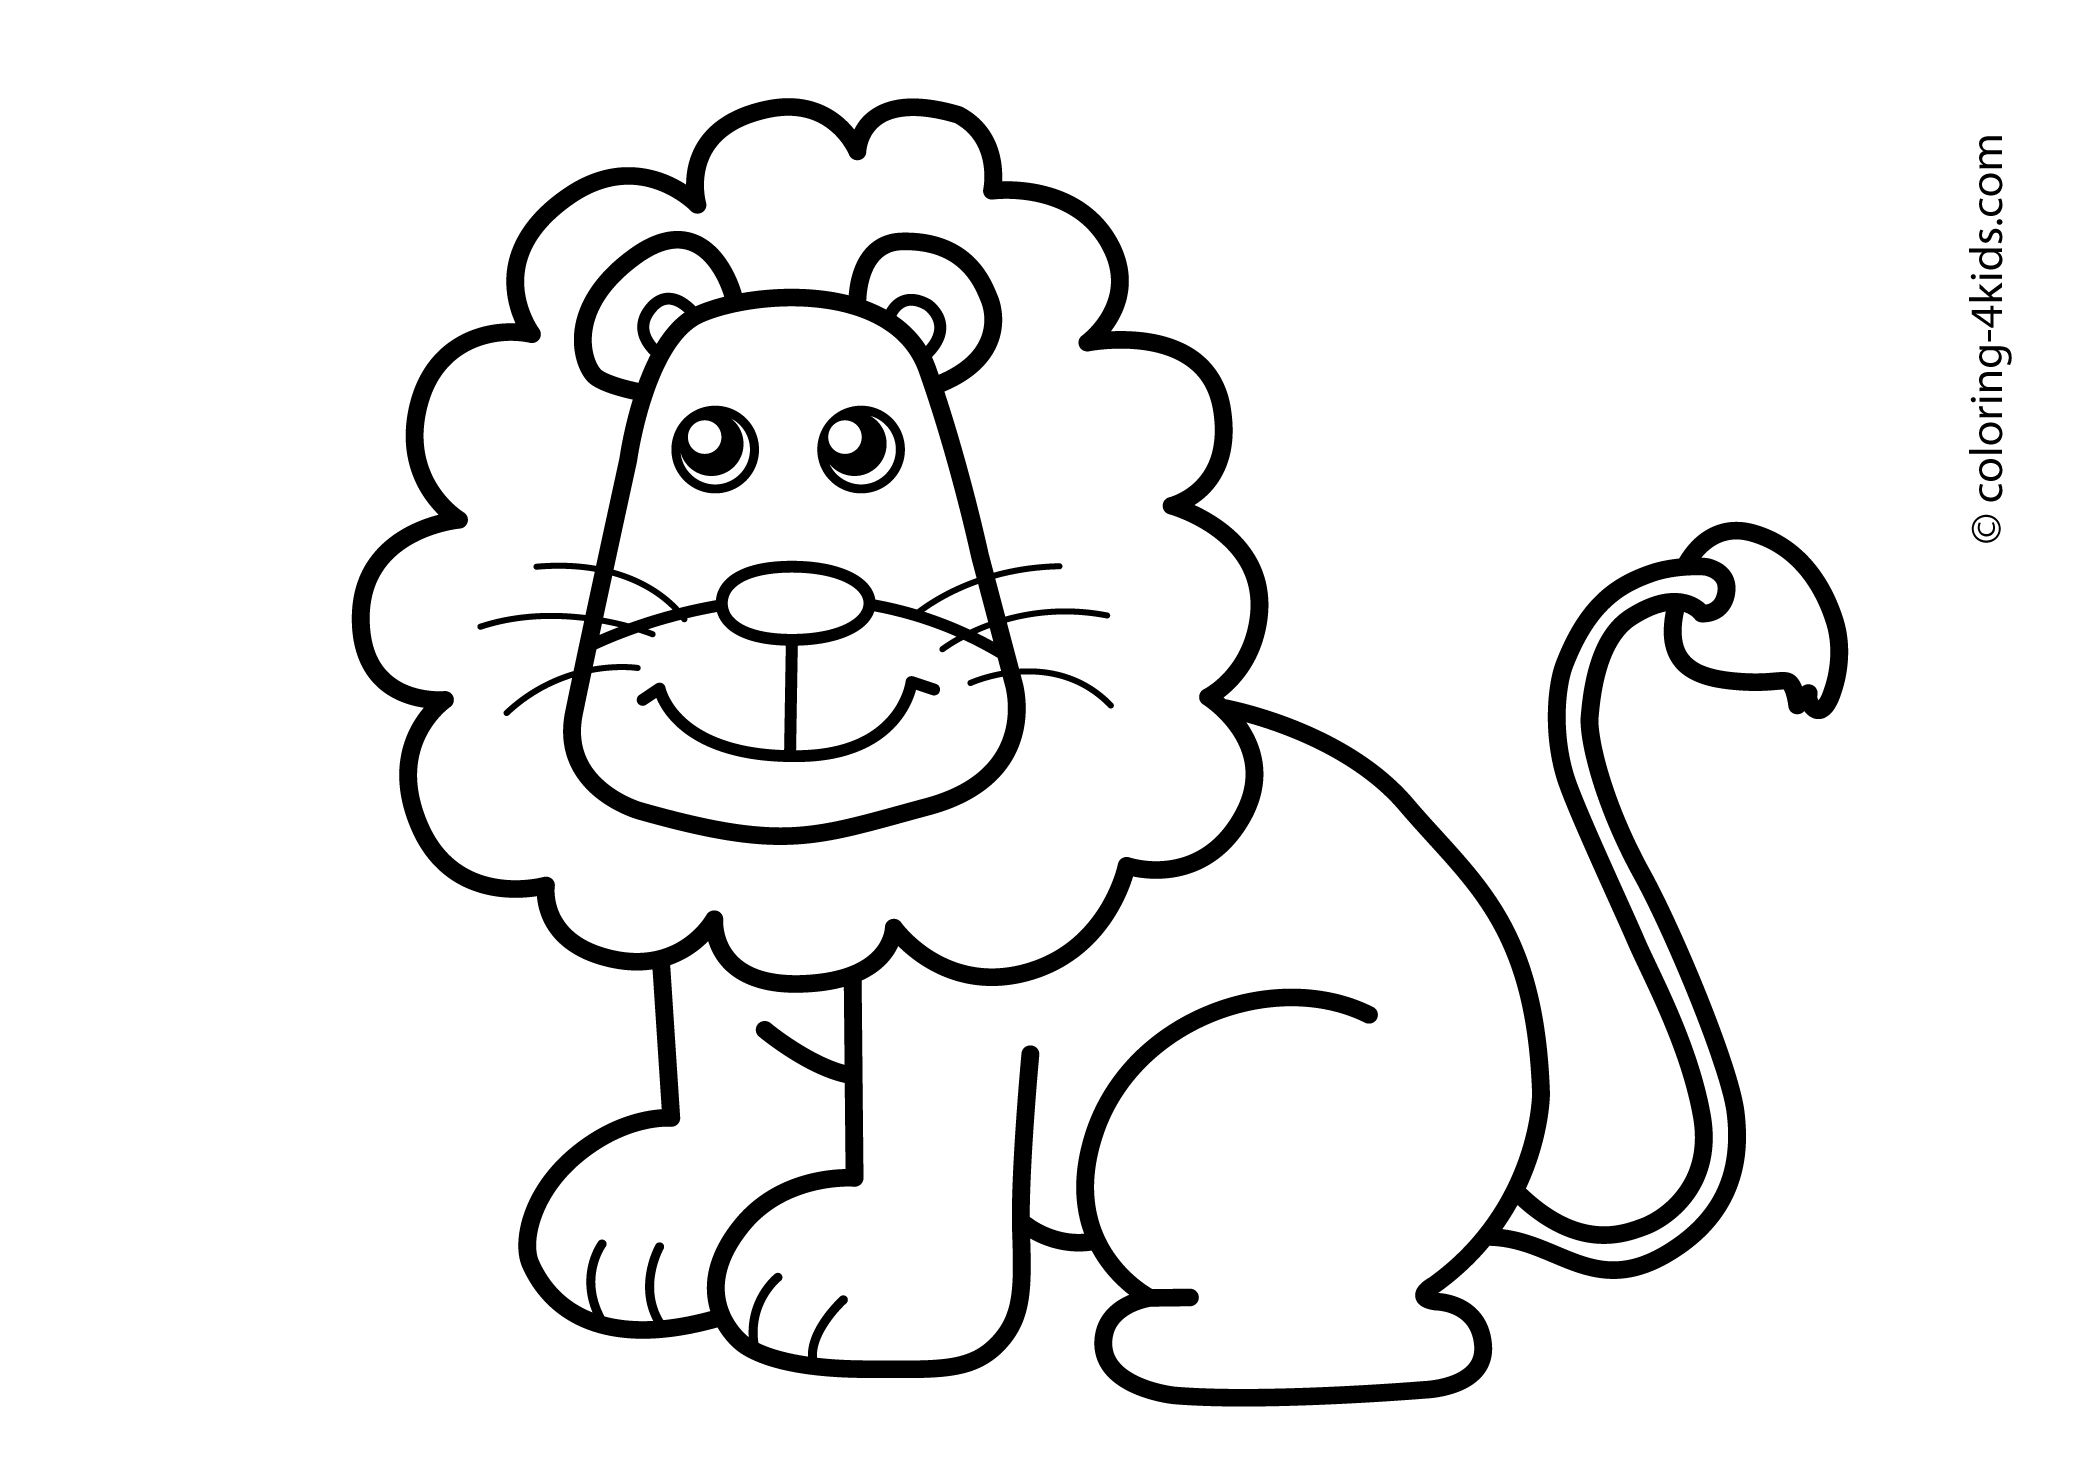 jungle animals coloring pages - jungle animal cartoon drawings 3